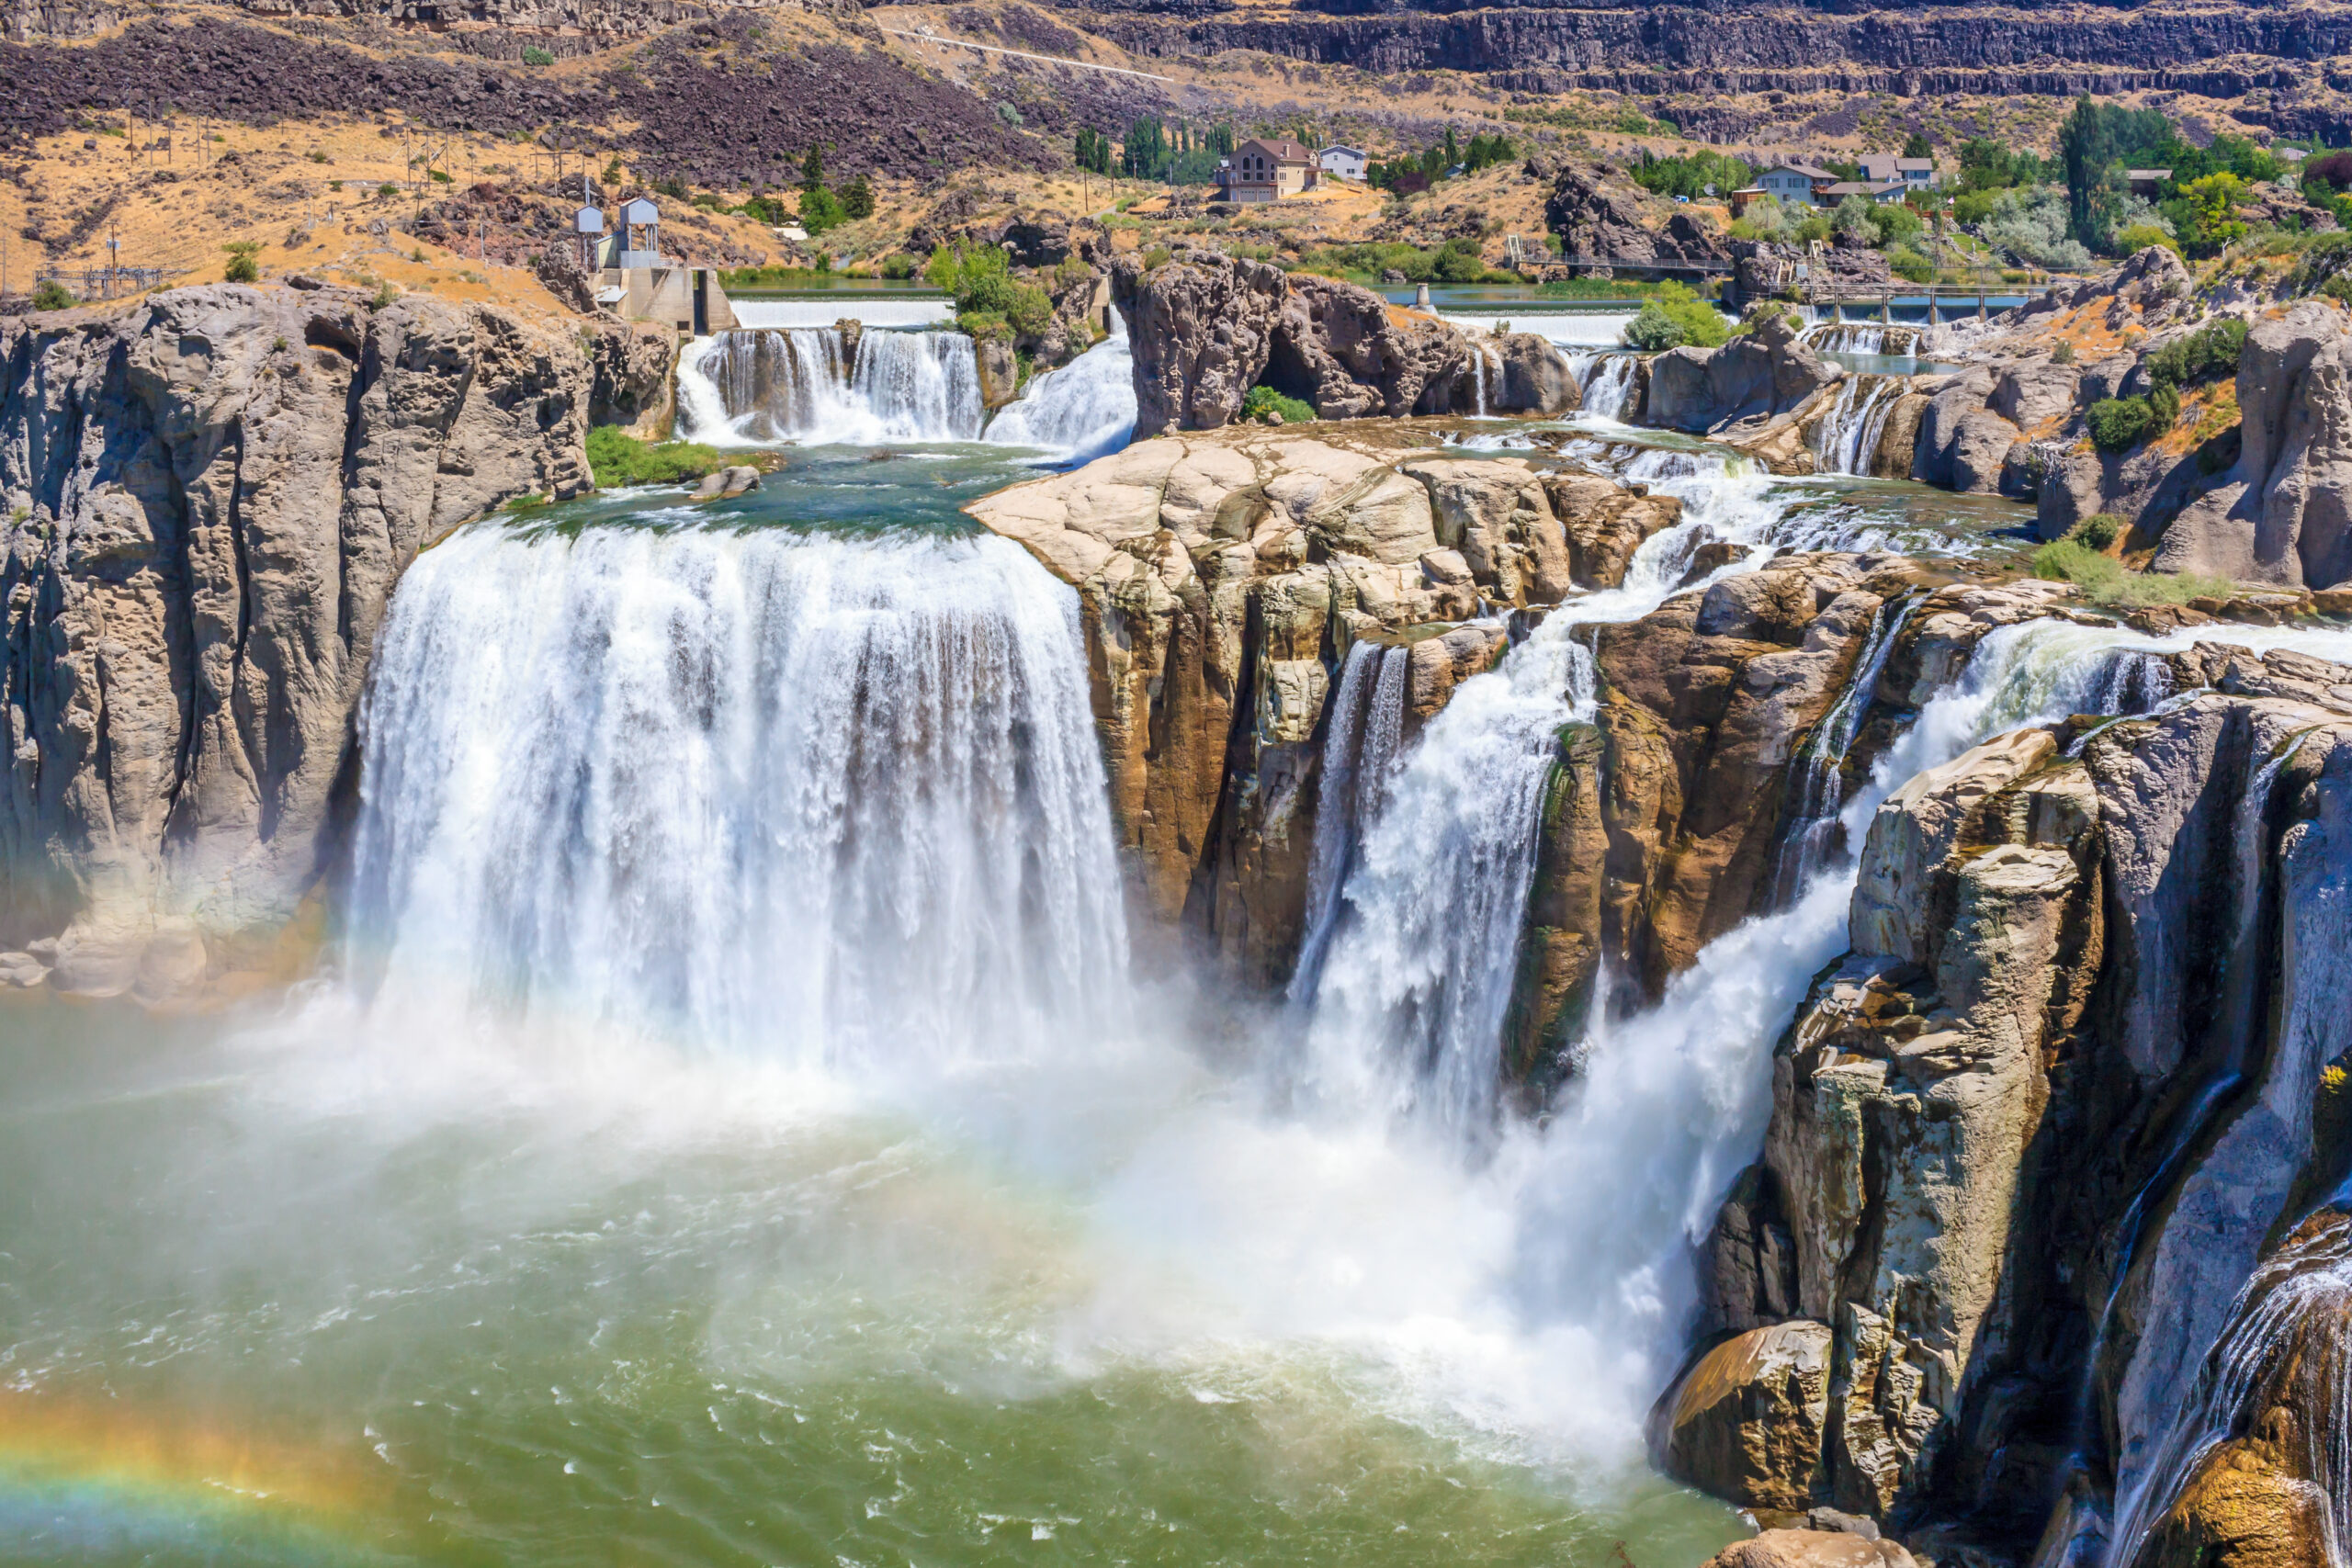 shoshone falls close up from across the river, one of the best waterfalls in idaho to visit